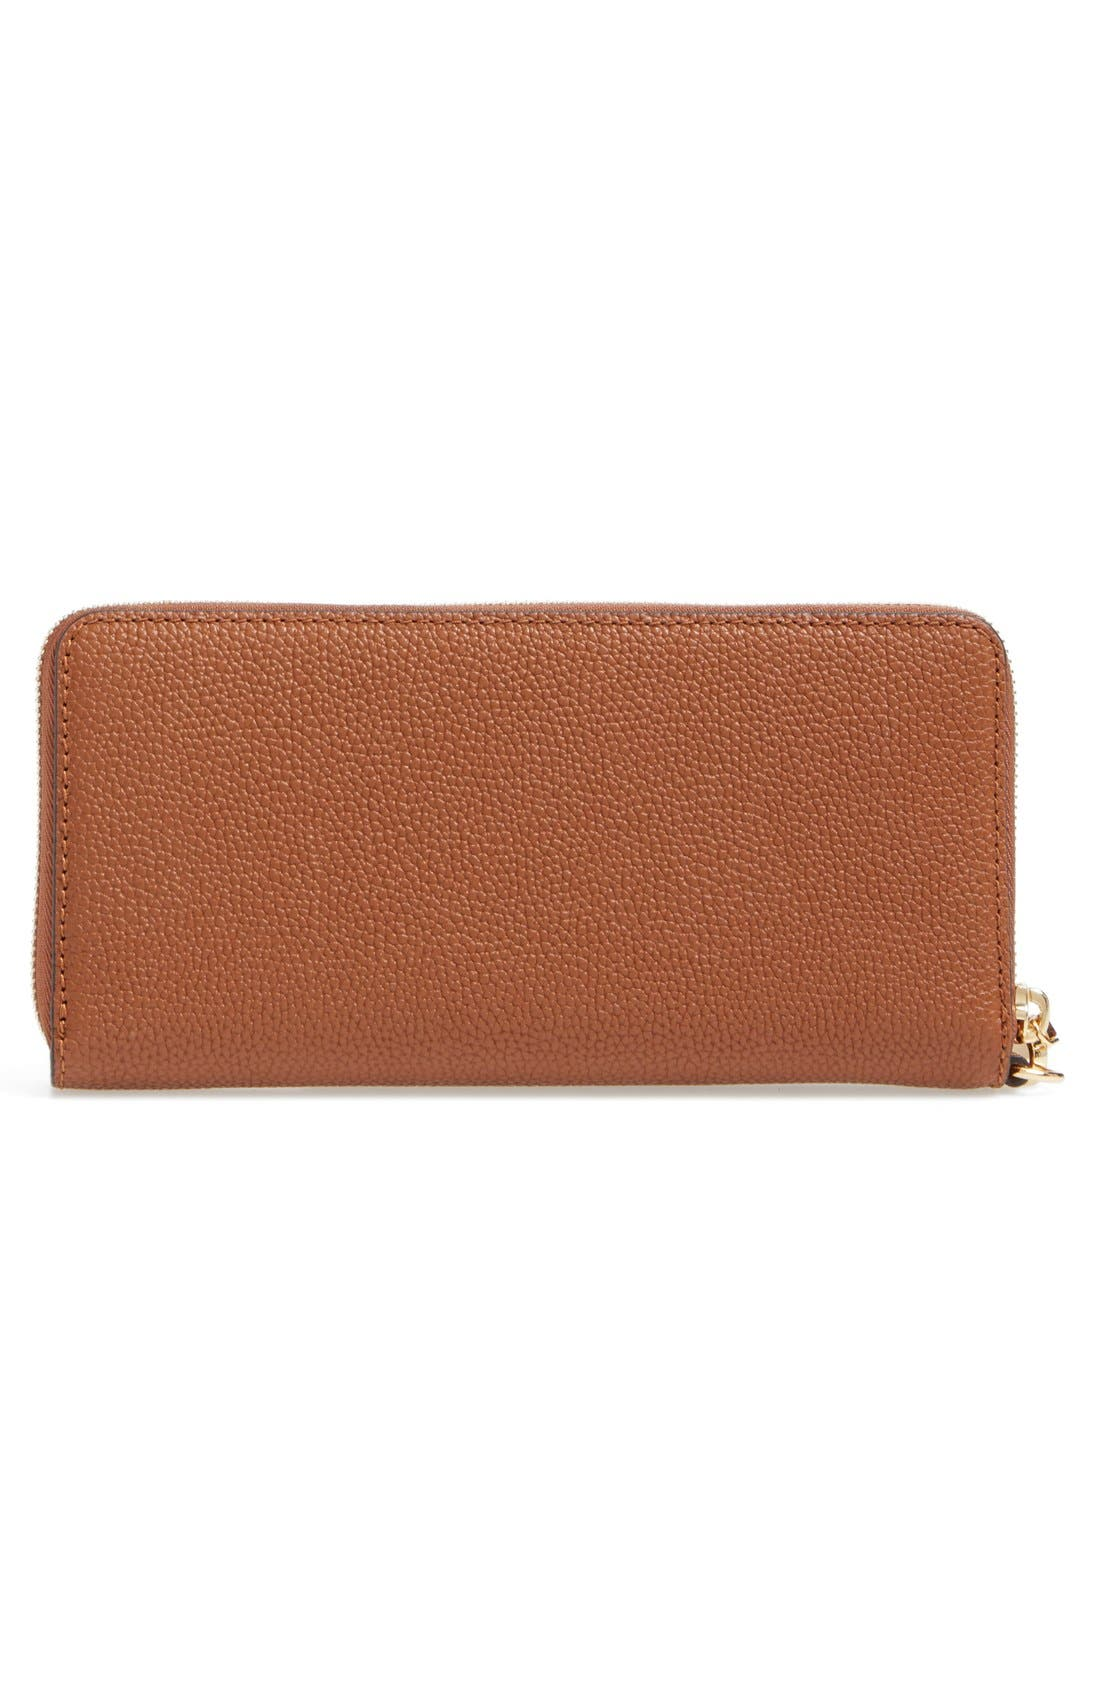 'Mercer' Leather Continental Wallet,                             Alternate thumbnail 37, color,